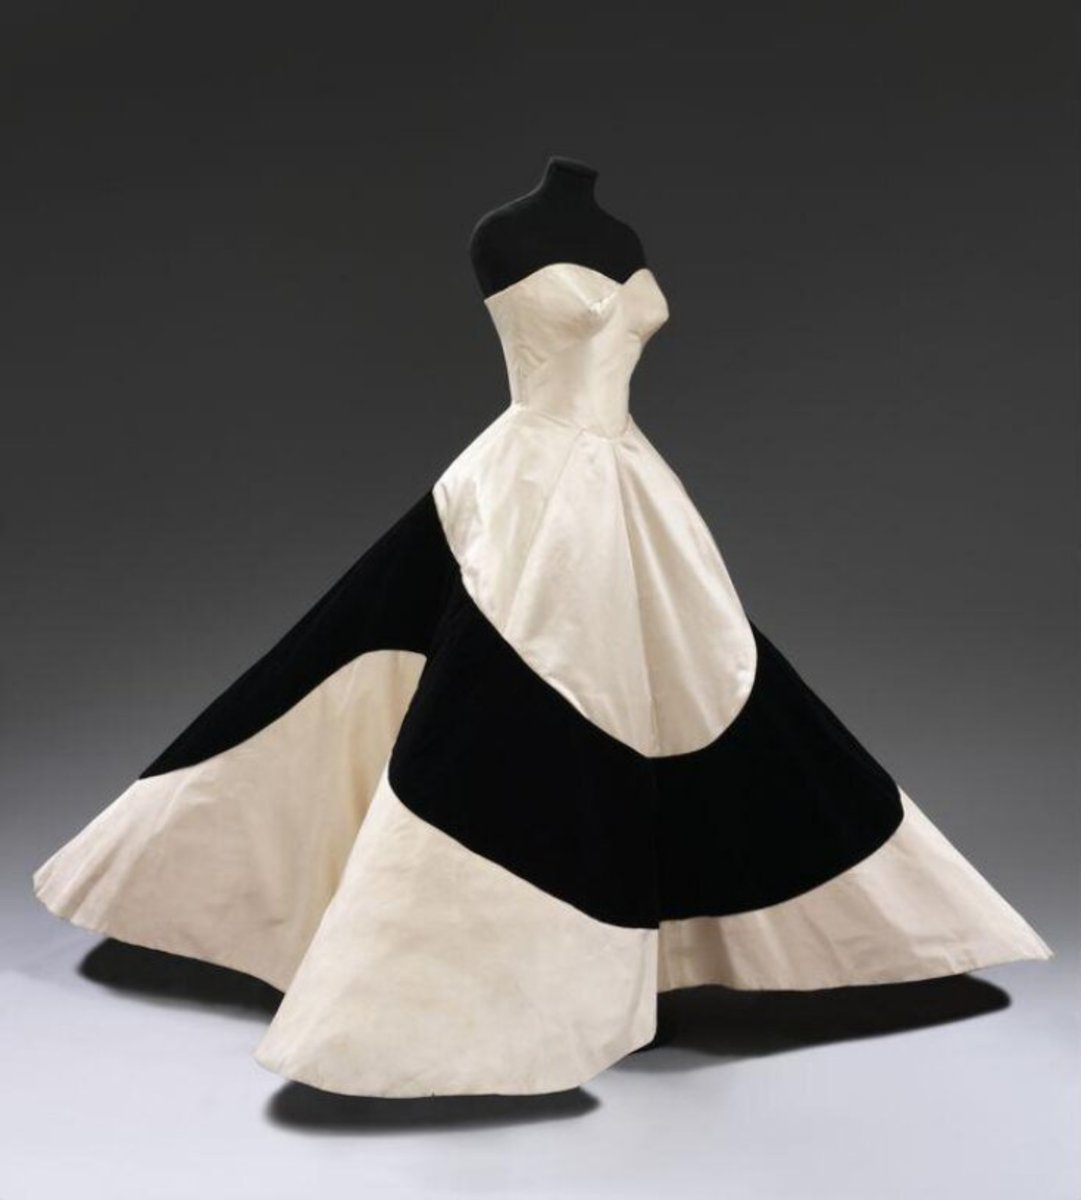 This Clover Leaf dress is in the collection of the Victoria and Albert Museum. The Metropolitan Museum of Art also has a couple of versions in its collection.